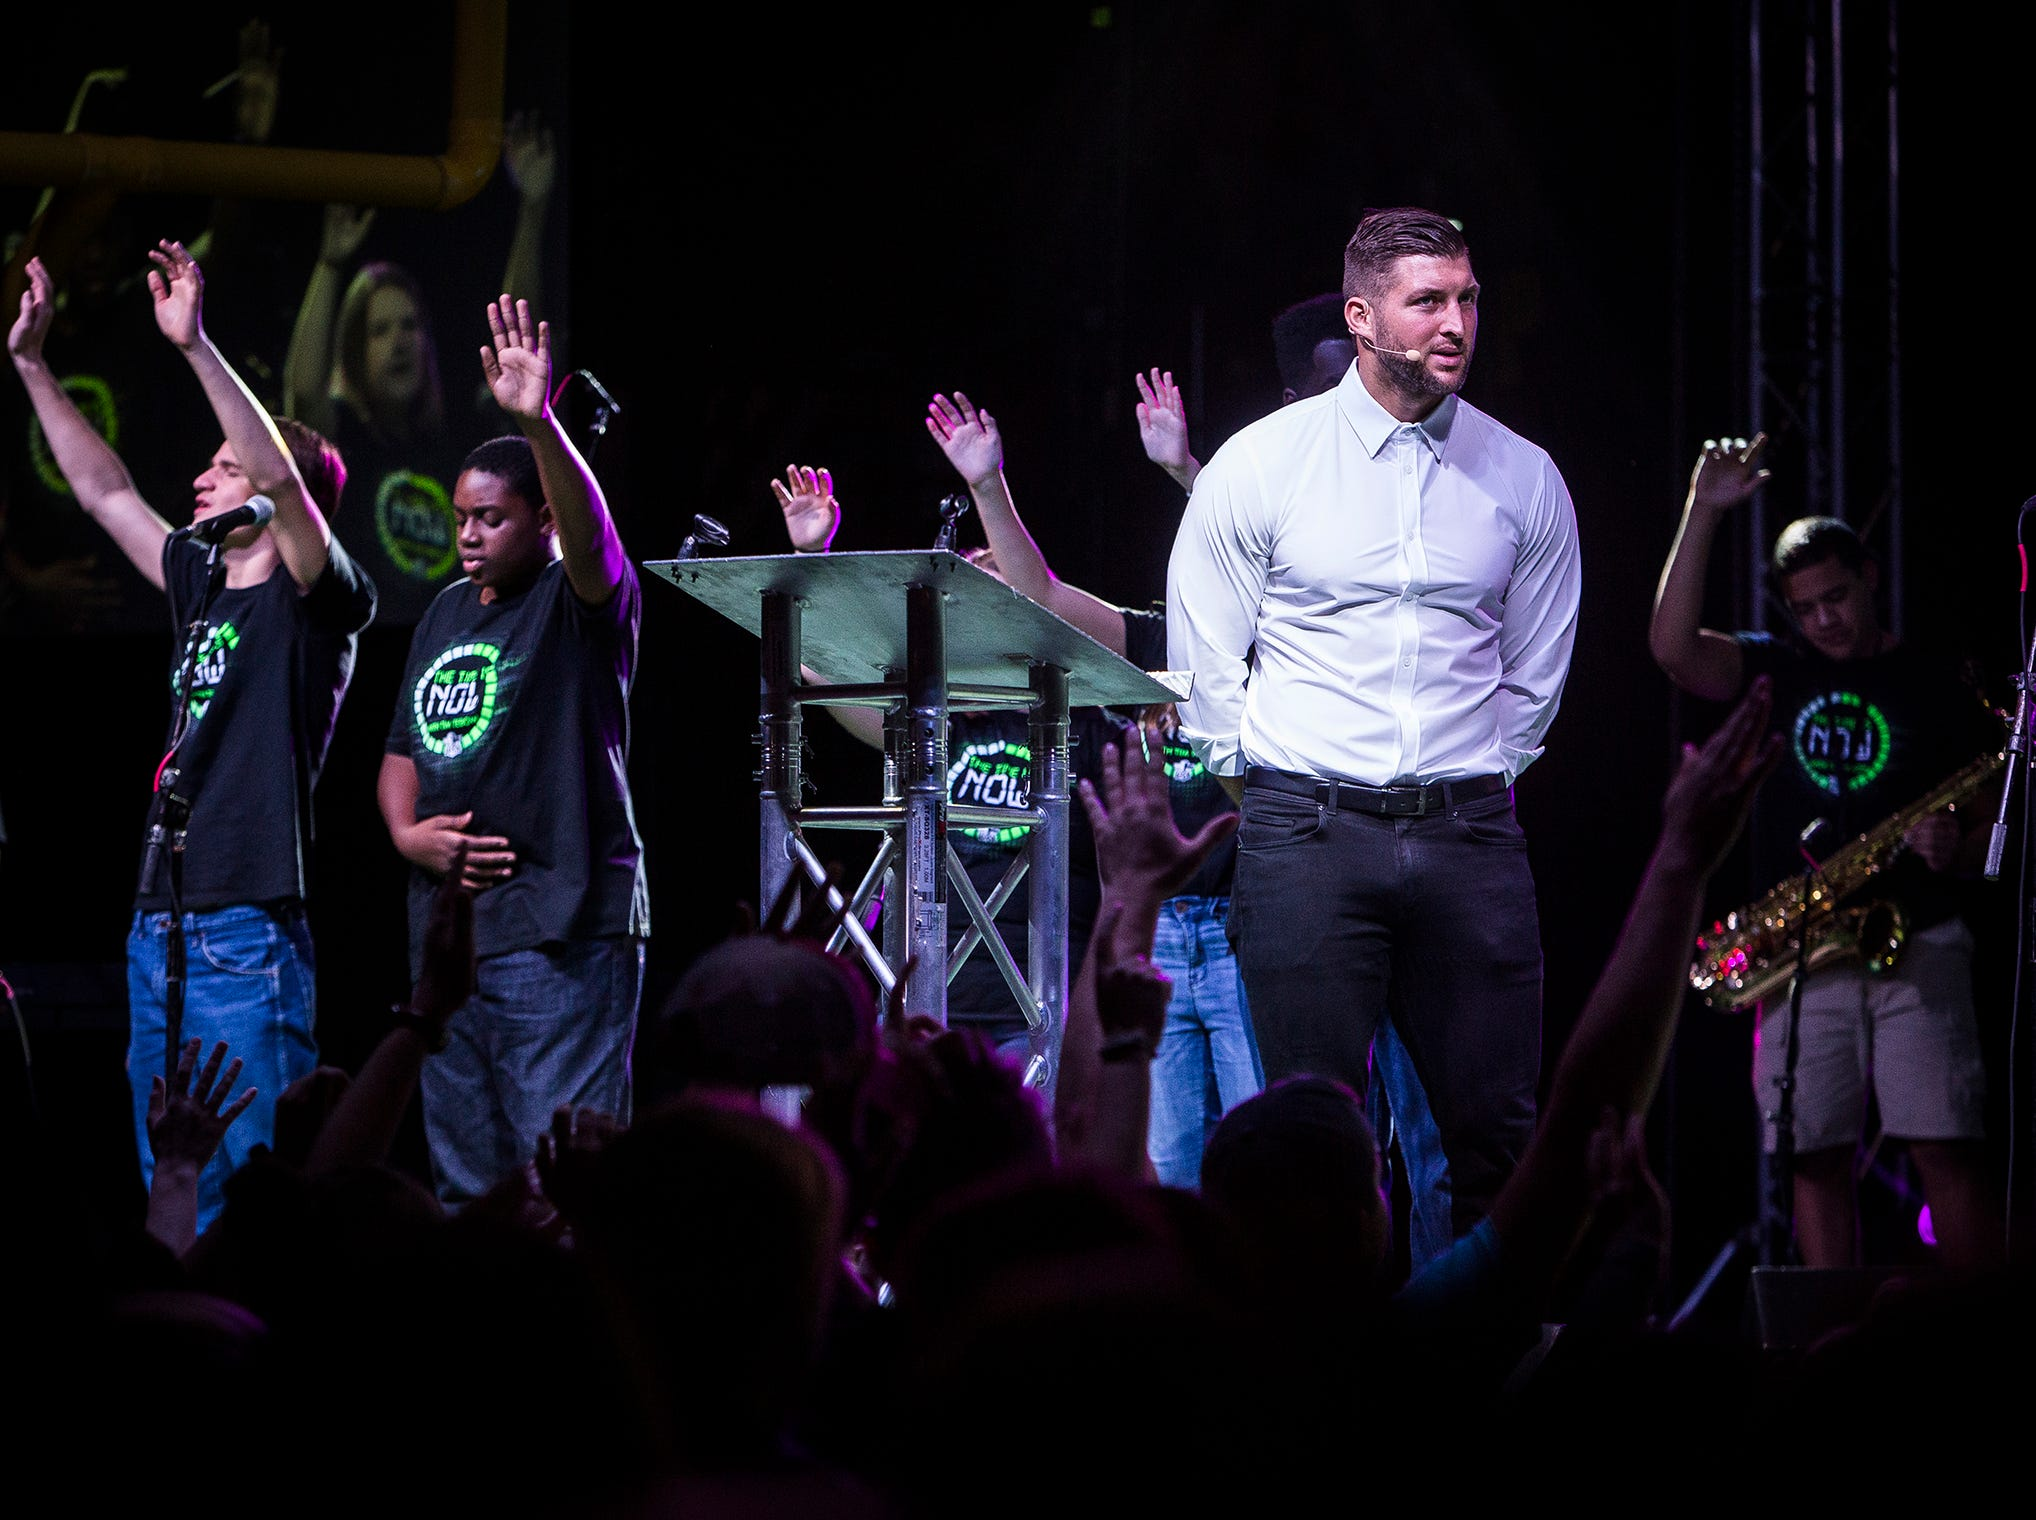 Thousands attended the tenth annual Fields of Faith event at Worthen Arena where former NFL player and current minor league baseball player Tim Tebow spoke about his faith to FCA members.